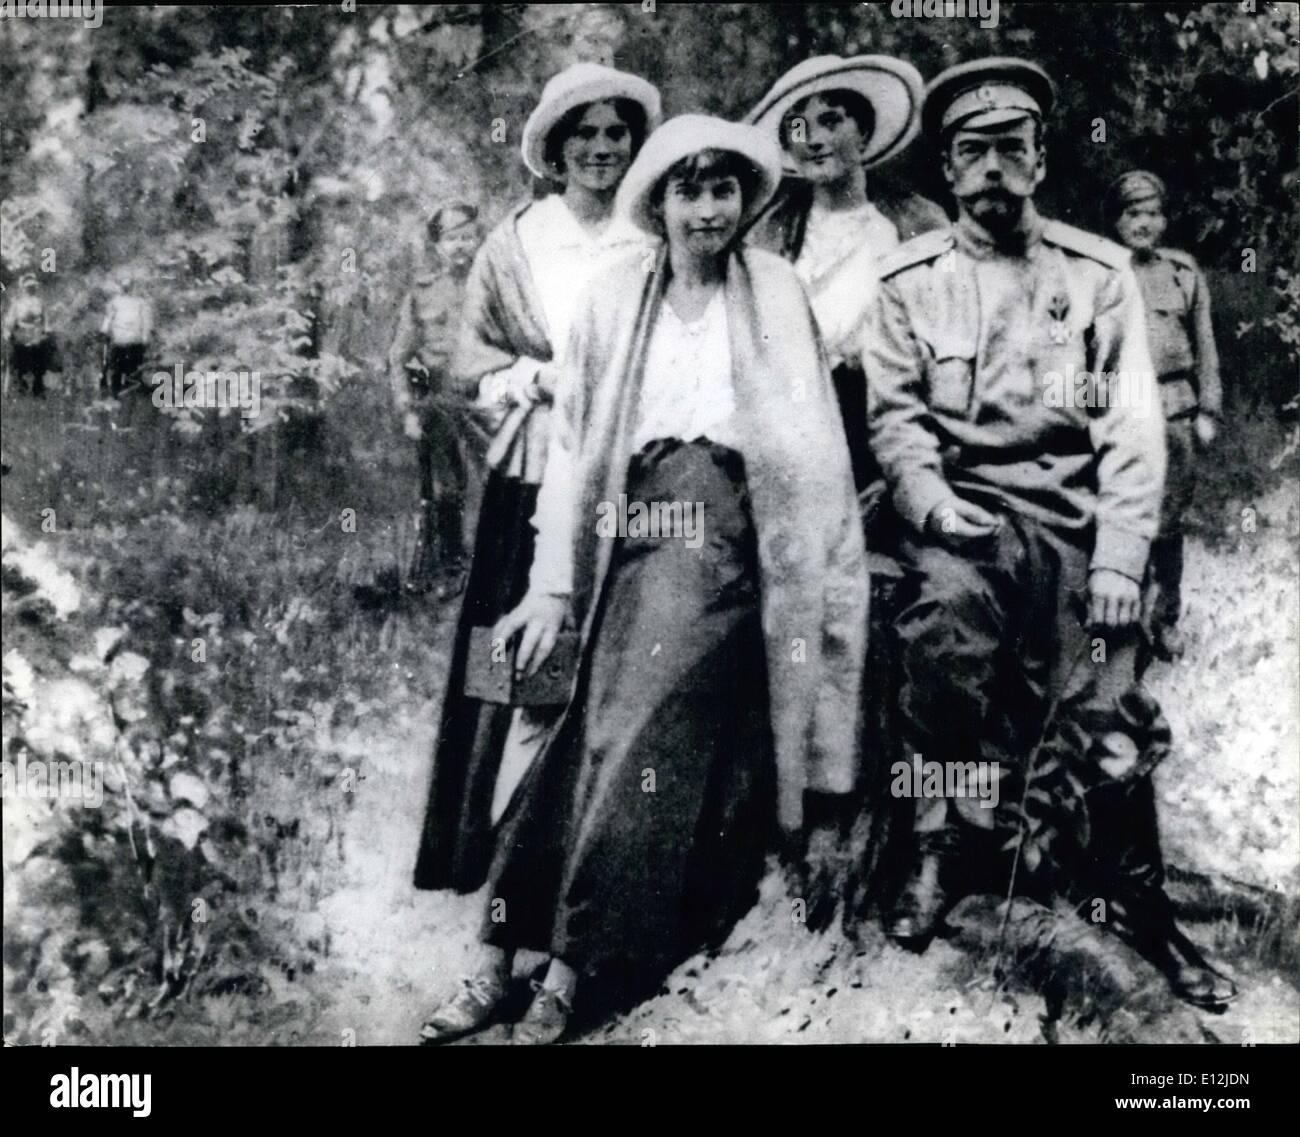 Feb. 24, 2012 - THE LAST RUSSIAN CZAR, NICOLAUS 11, WITH THRE OF HIS FOUR DAUGHTERS DURING IN GINERIA AND FEW WEEKS BEFORE THE ASSASINATION. FROM LEFT TO RIGHT: MARIA ANASTASTA, OLGA AND THE CZAR, JAILERS OF THE BOLSHEVIK ARMN SEEN IN BACKGROUND. - Stock Image